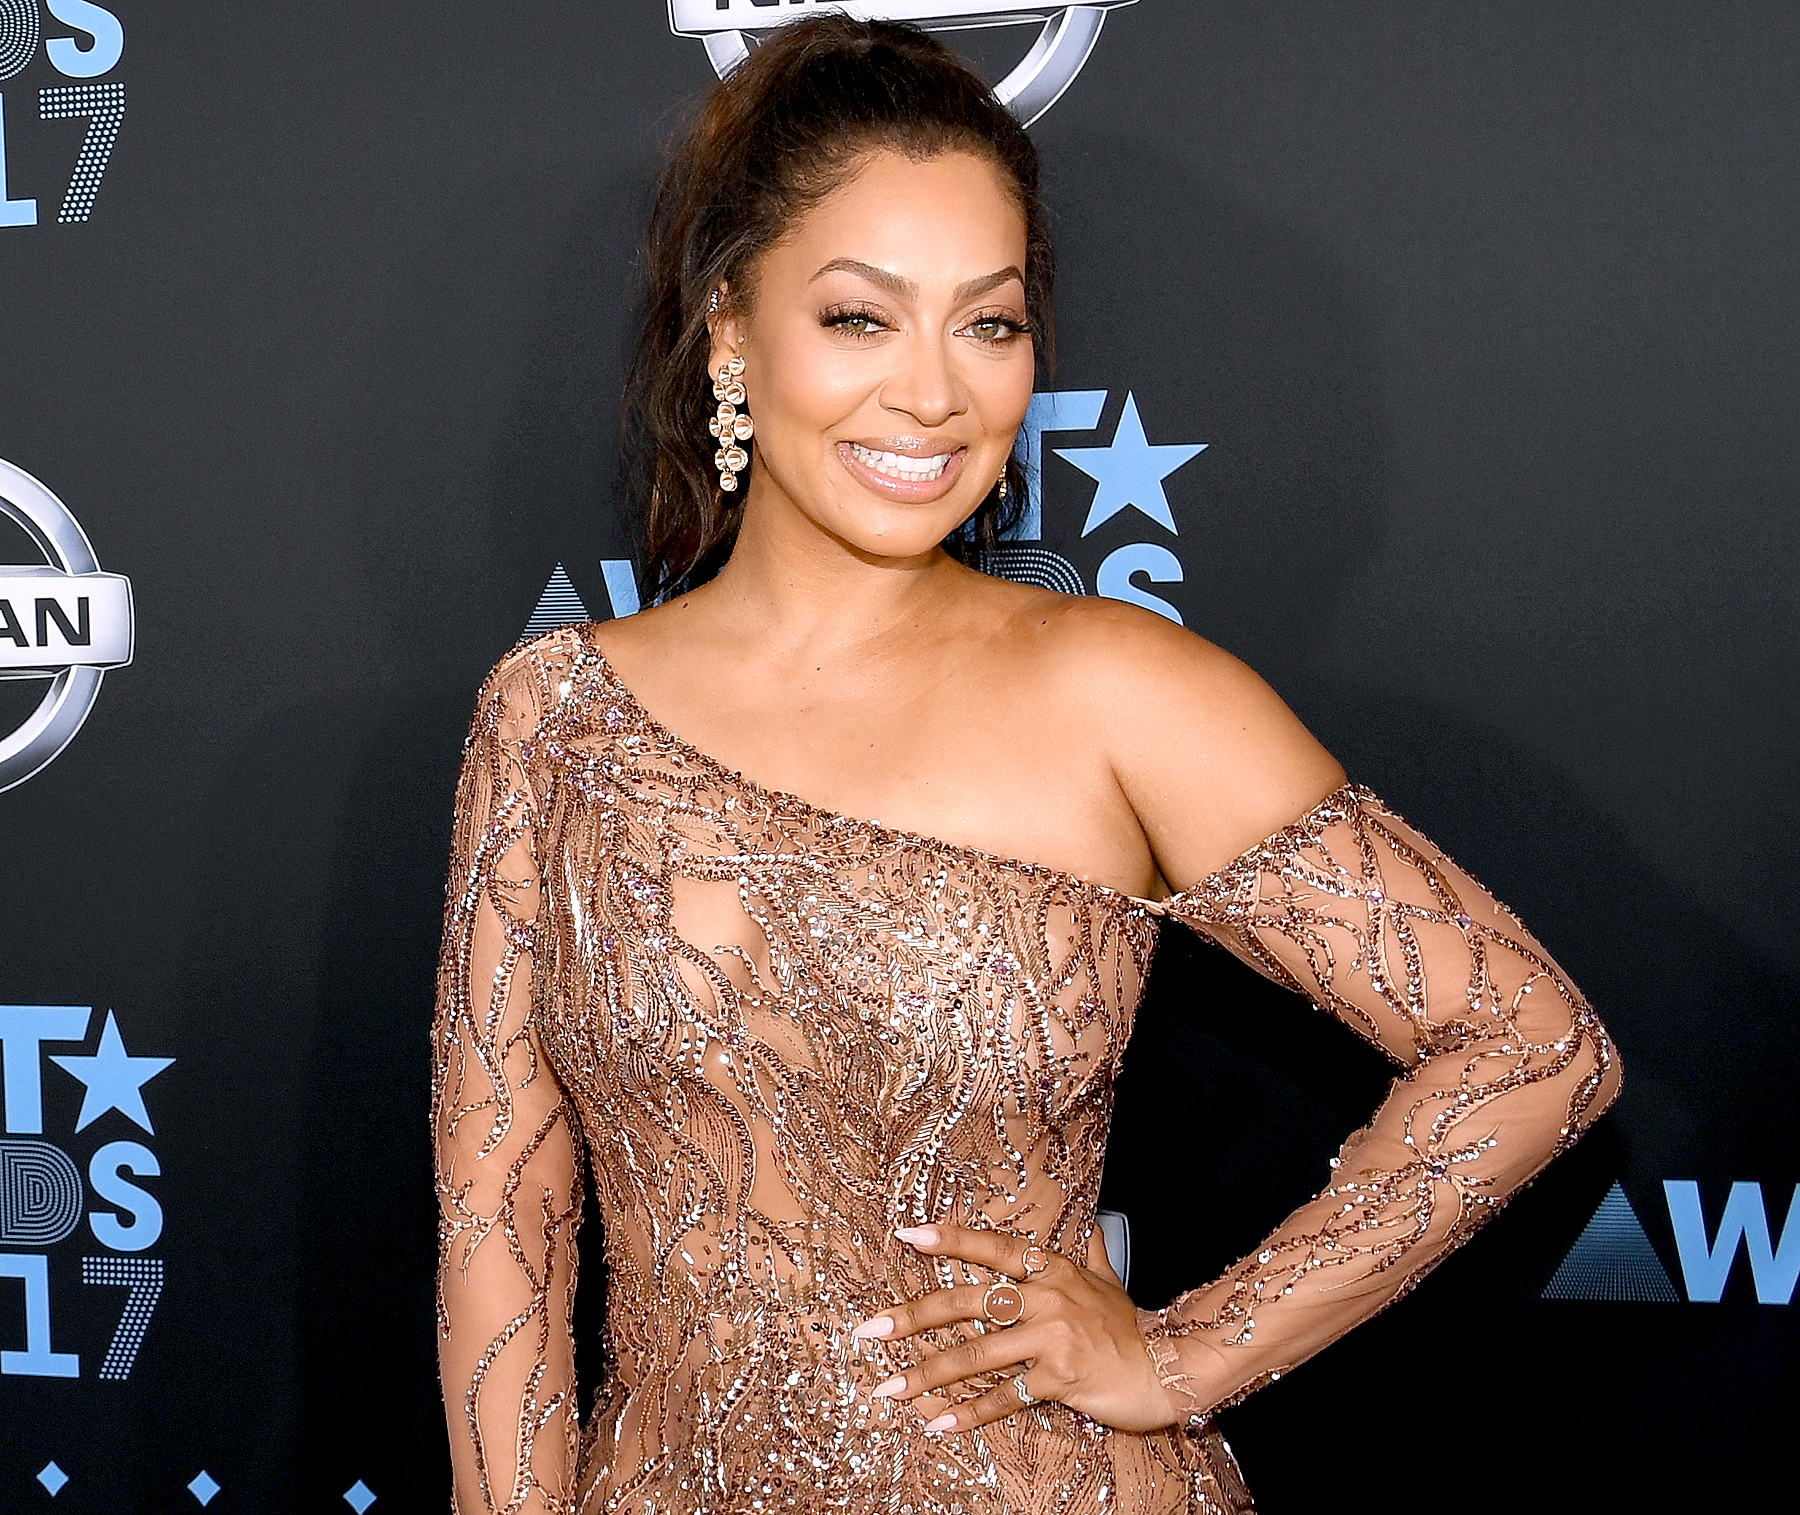 La La Anthony at the 2017 BET Awards at Staples Center on June 25, 2017 in Los Angeles, California.